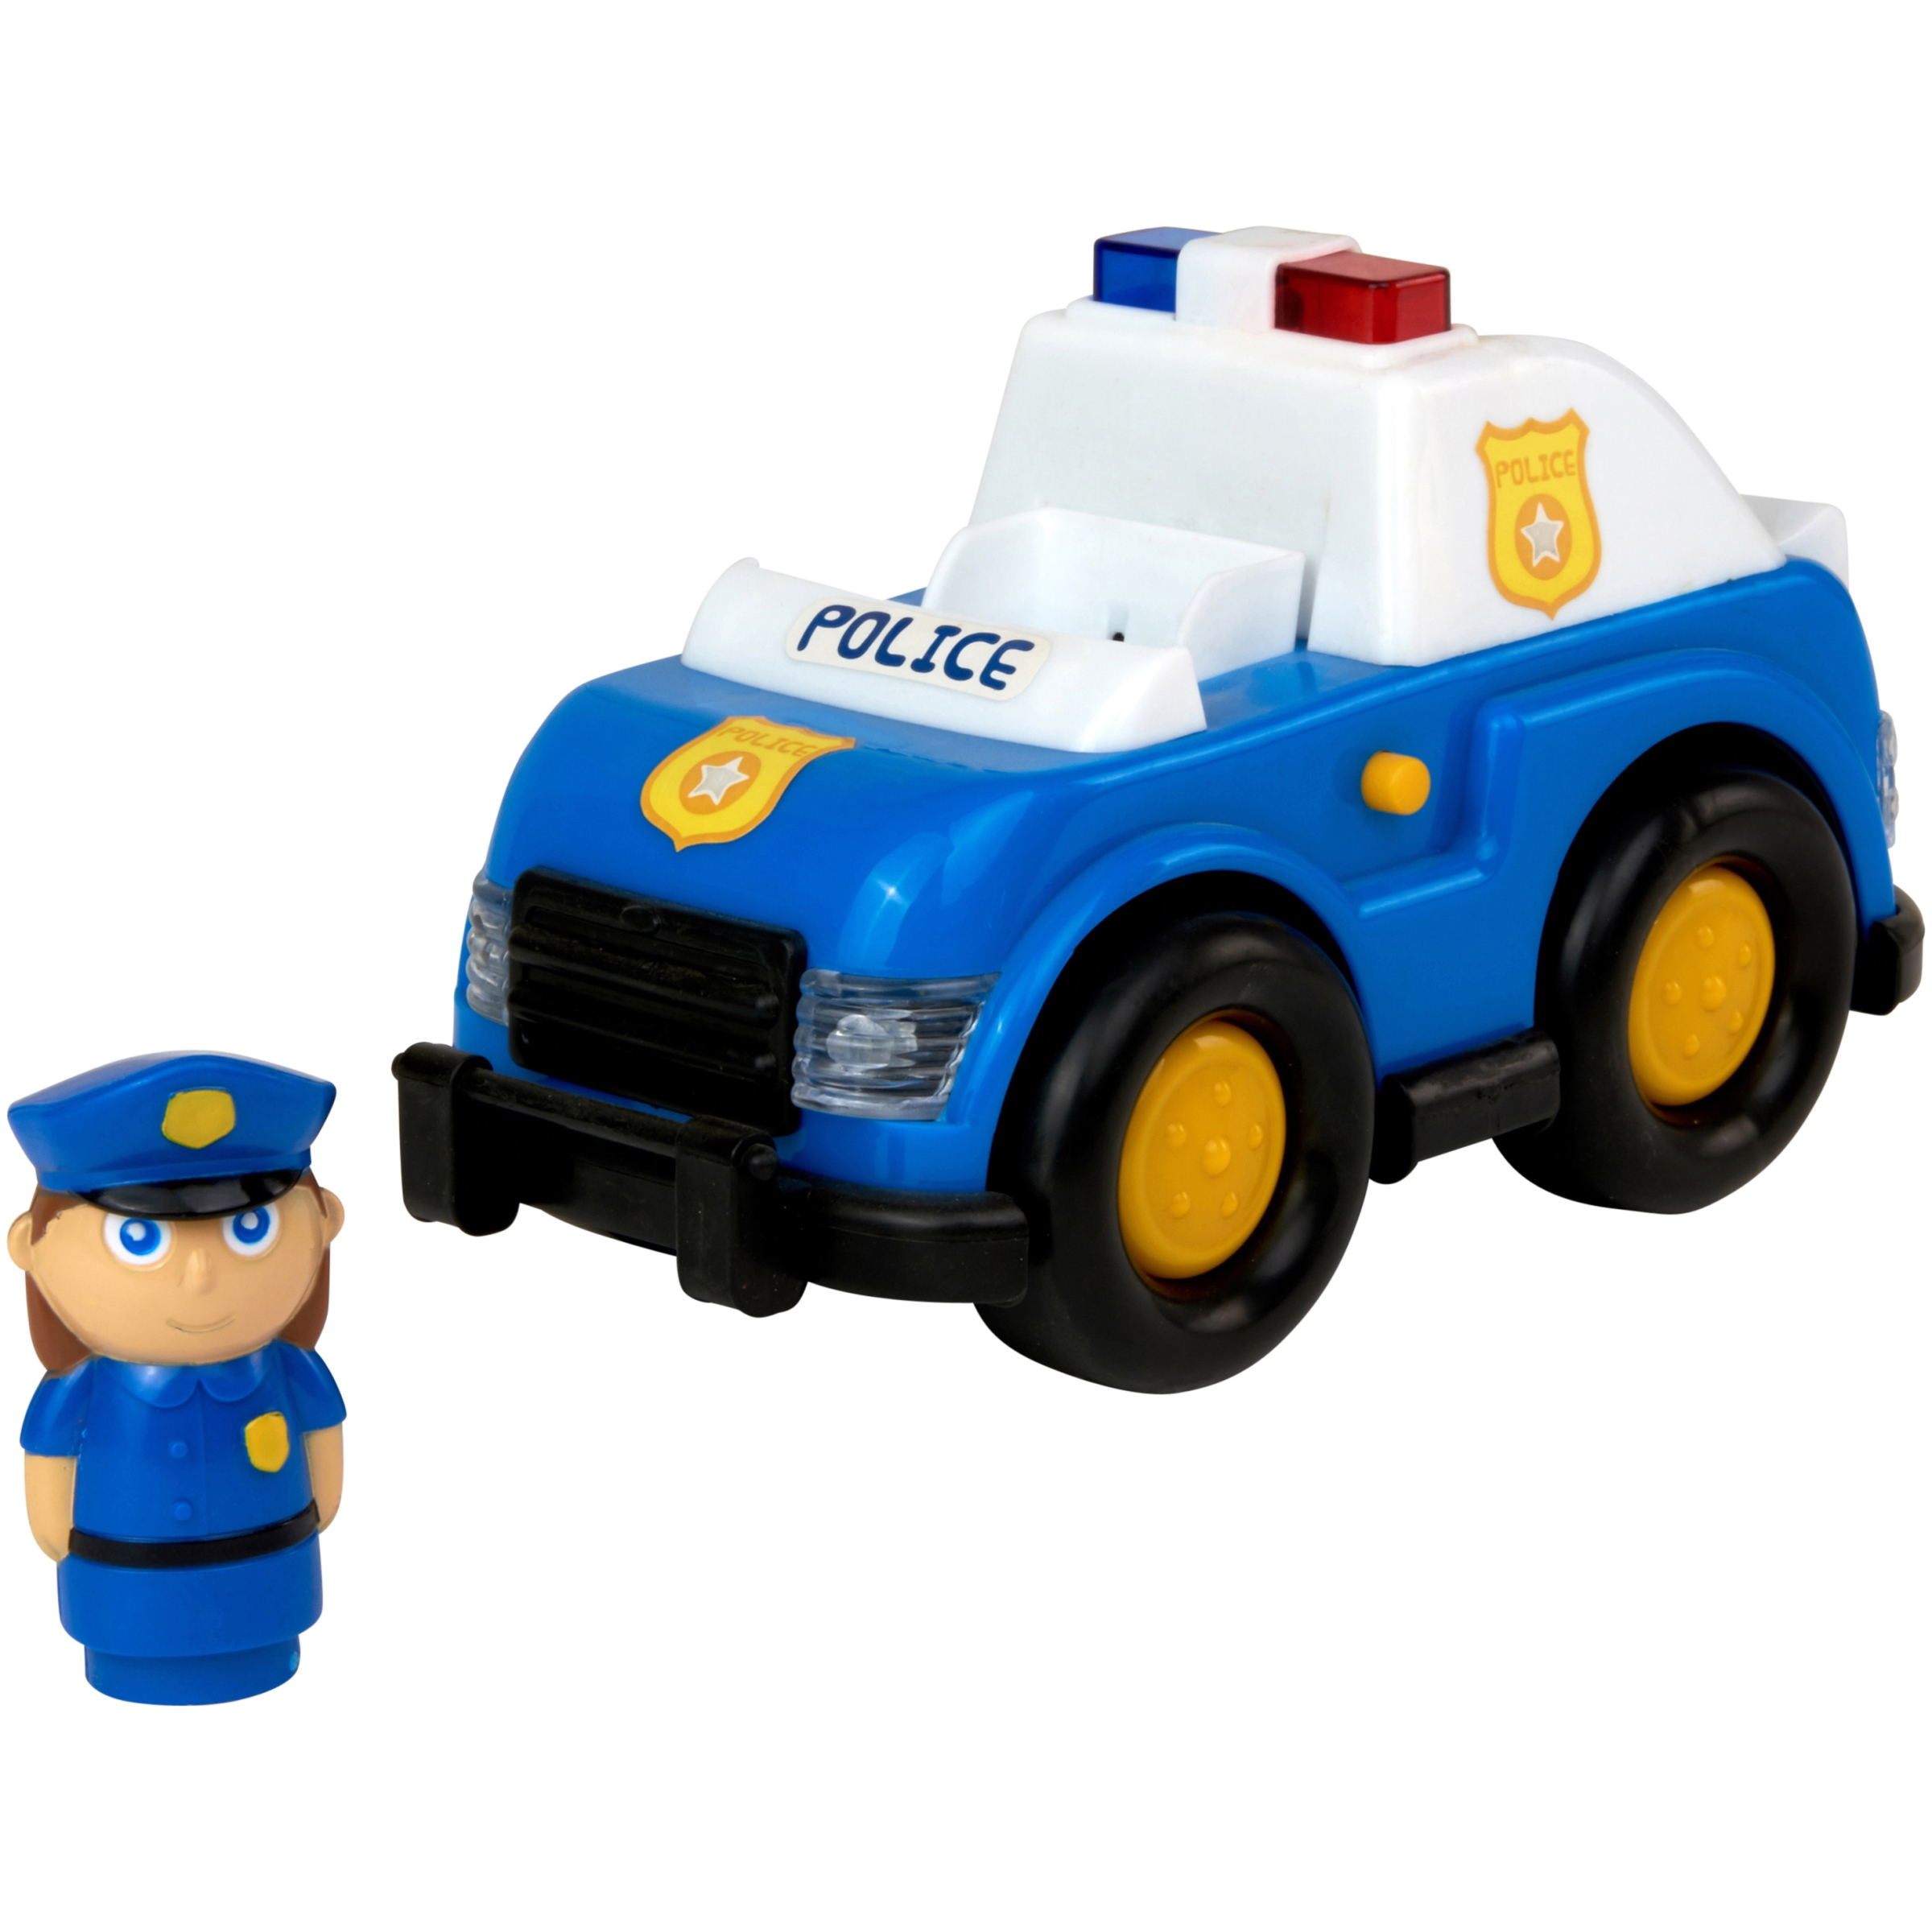 Kid Connection Light & Sound My First Vehicle Toy Police Car with Figure